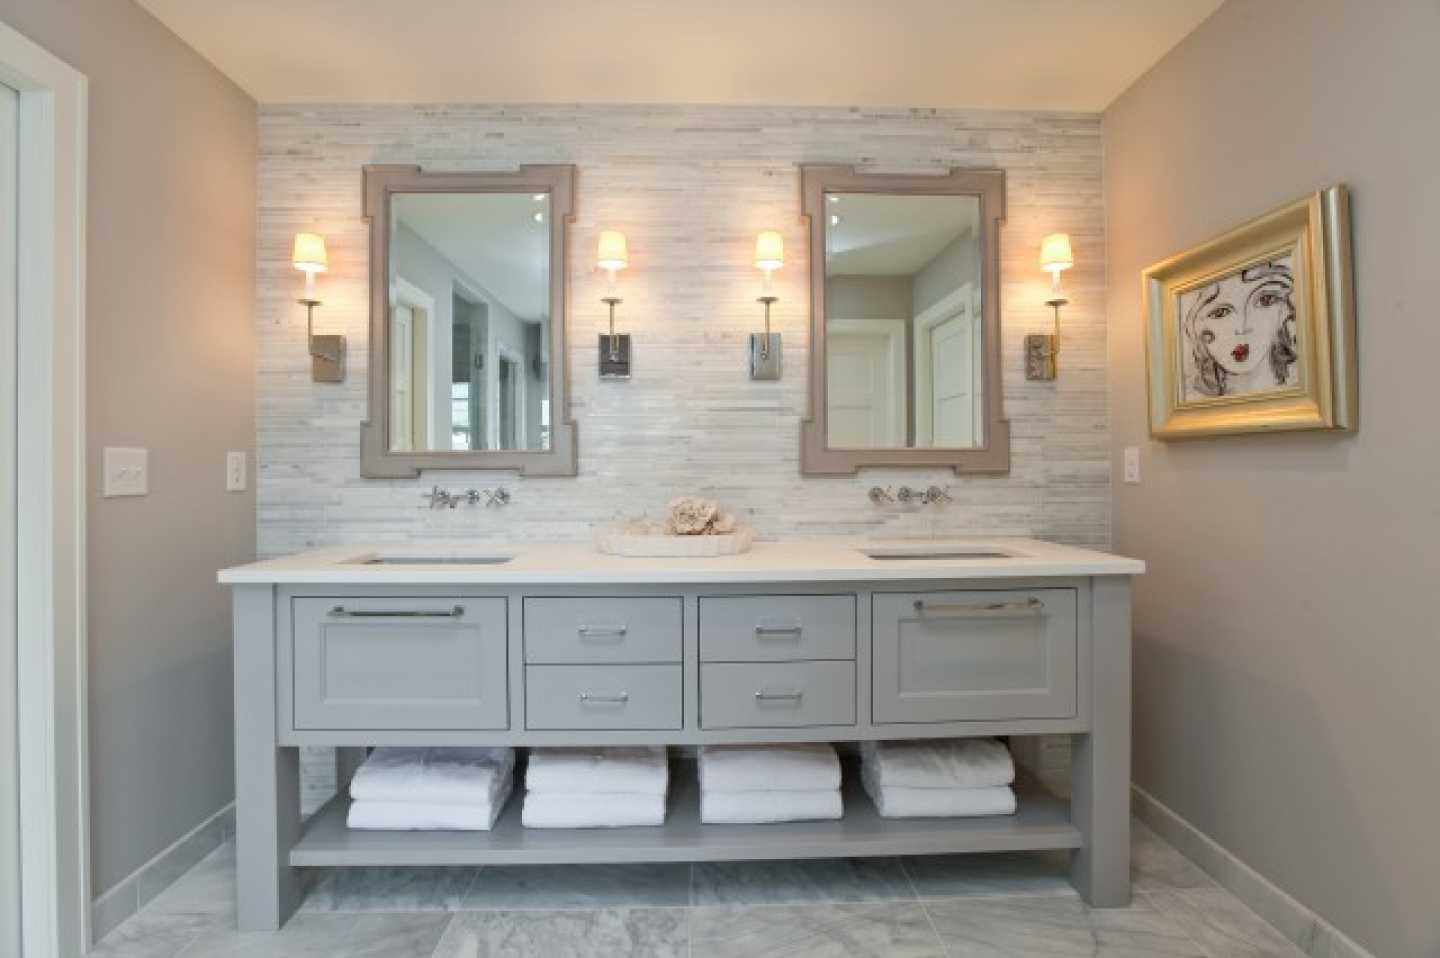 Finding White Bathroom Vanities with Tops, Antique, Marbles on painted bathroom vanities top, bathroom vanities product, desk with top, bathroom vanities and cabinets, wood bathroom vanities with top, bathroom home, fireplace with top, dresser with top, bathroom vanities and sinks, clearance bathroom vanities with top, bathtub with top, bathroom appliances,